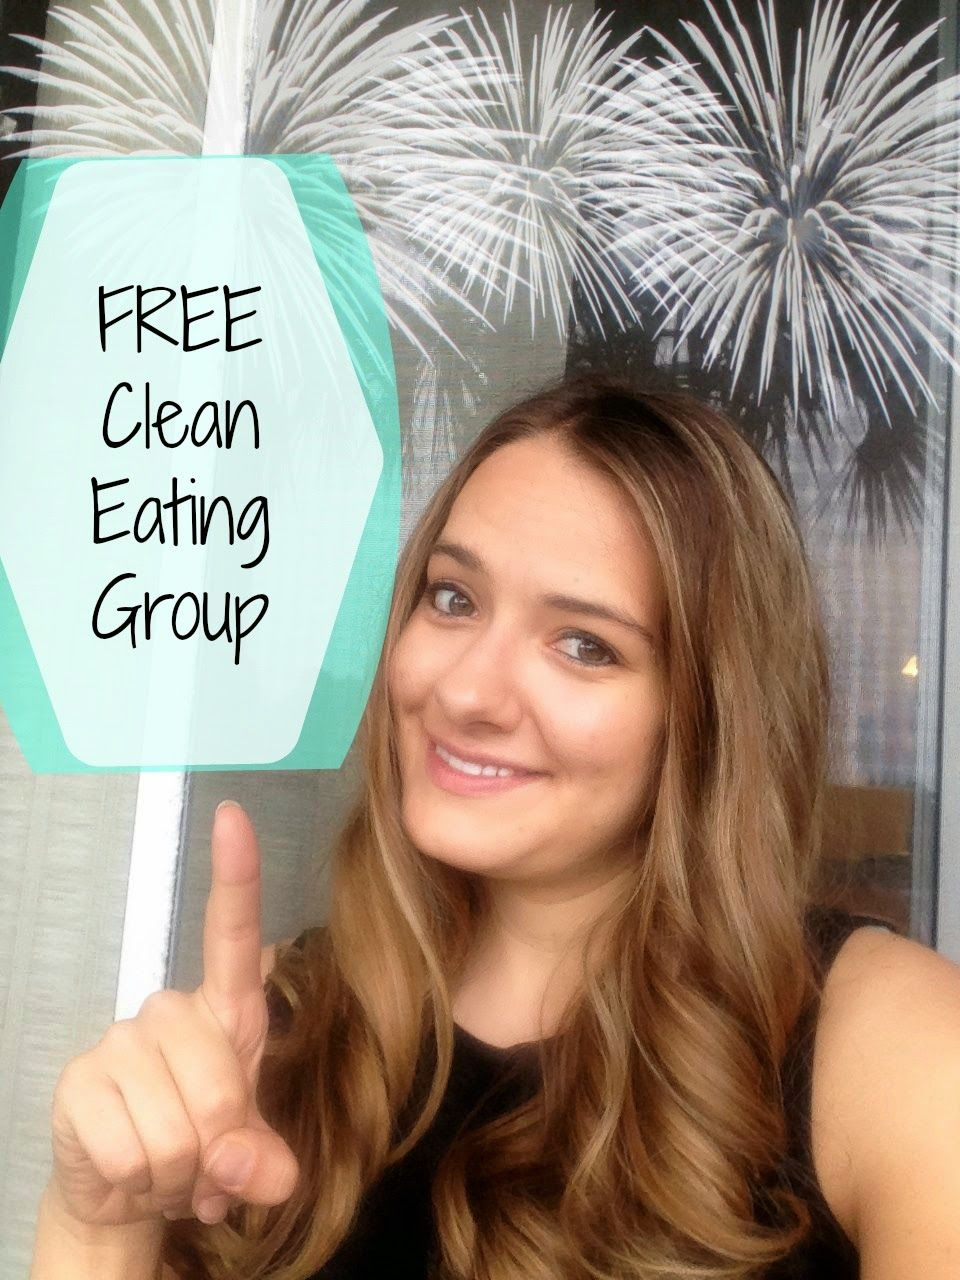 Cassandra gets fit free clean eating group clean eating